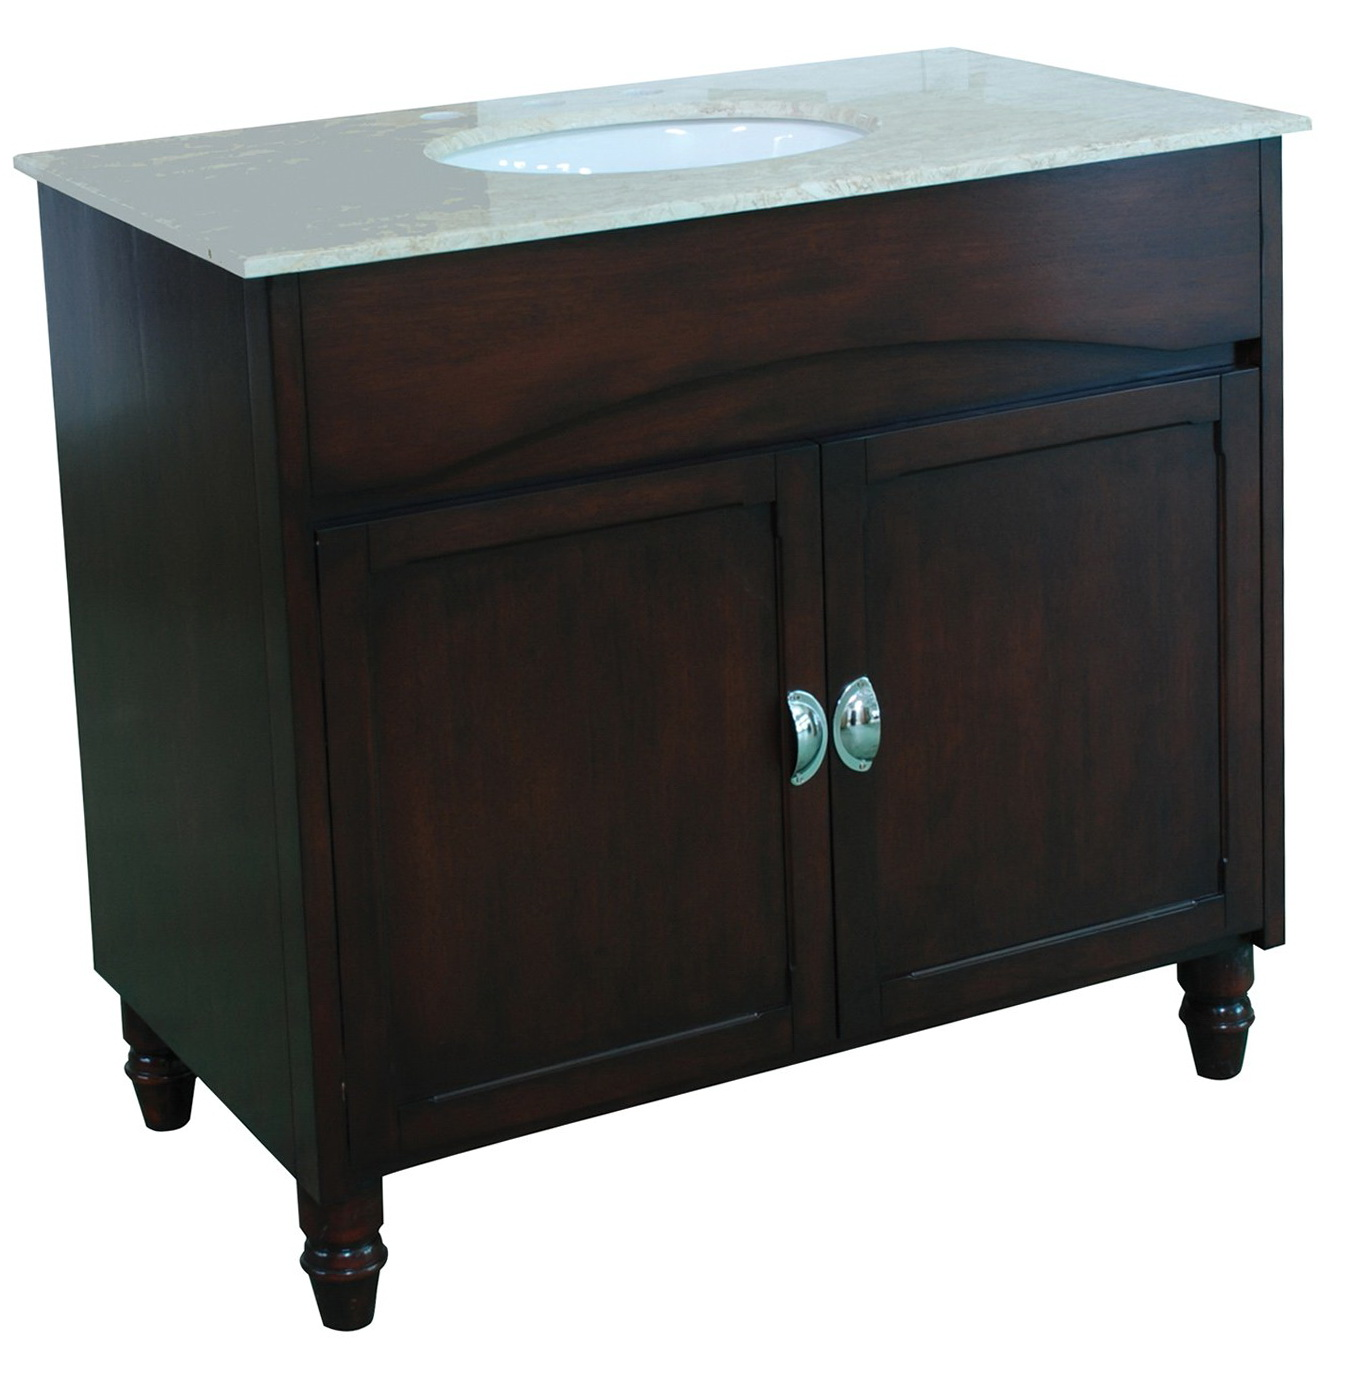 36 Inch Bathroom Vanity Countertop